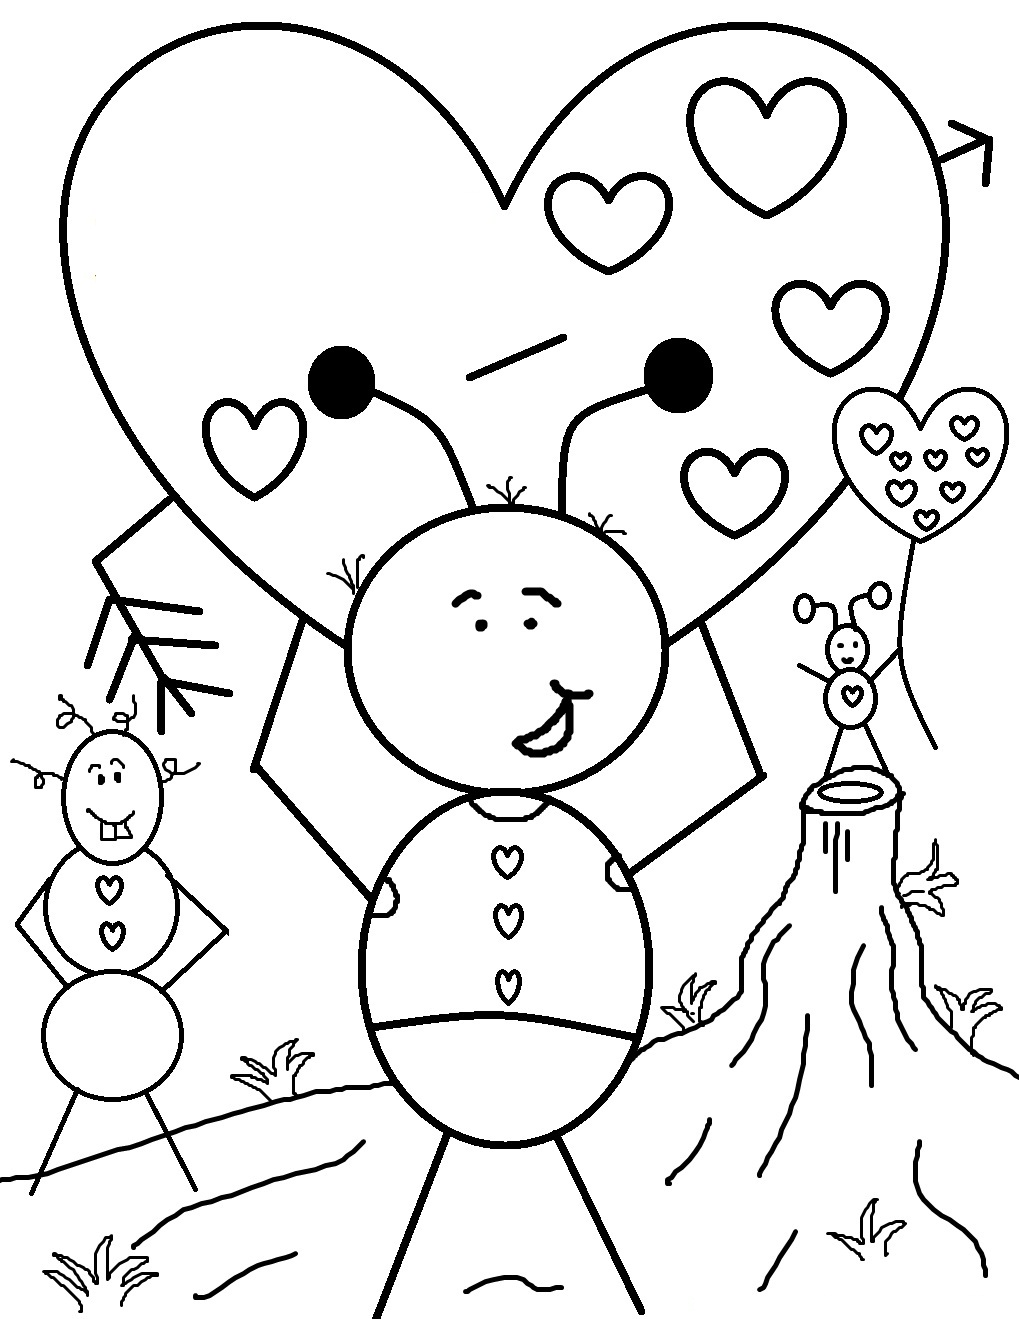 Free Printable Valentine Coloring Pages For Kids Free Valentines Coloring